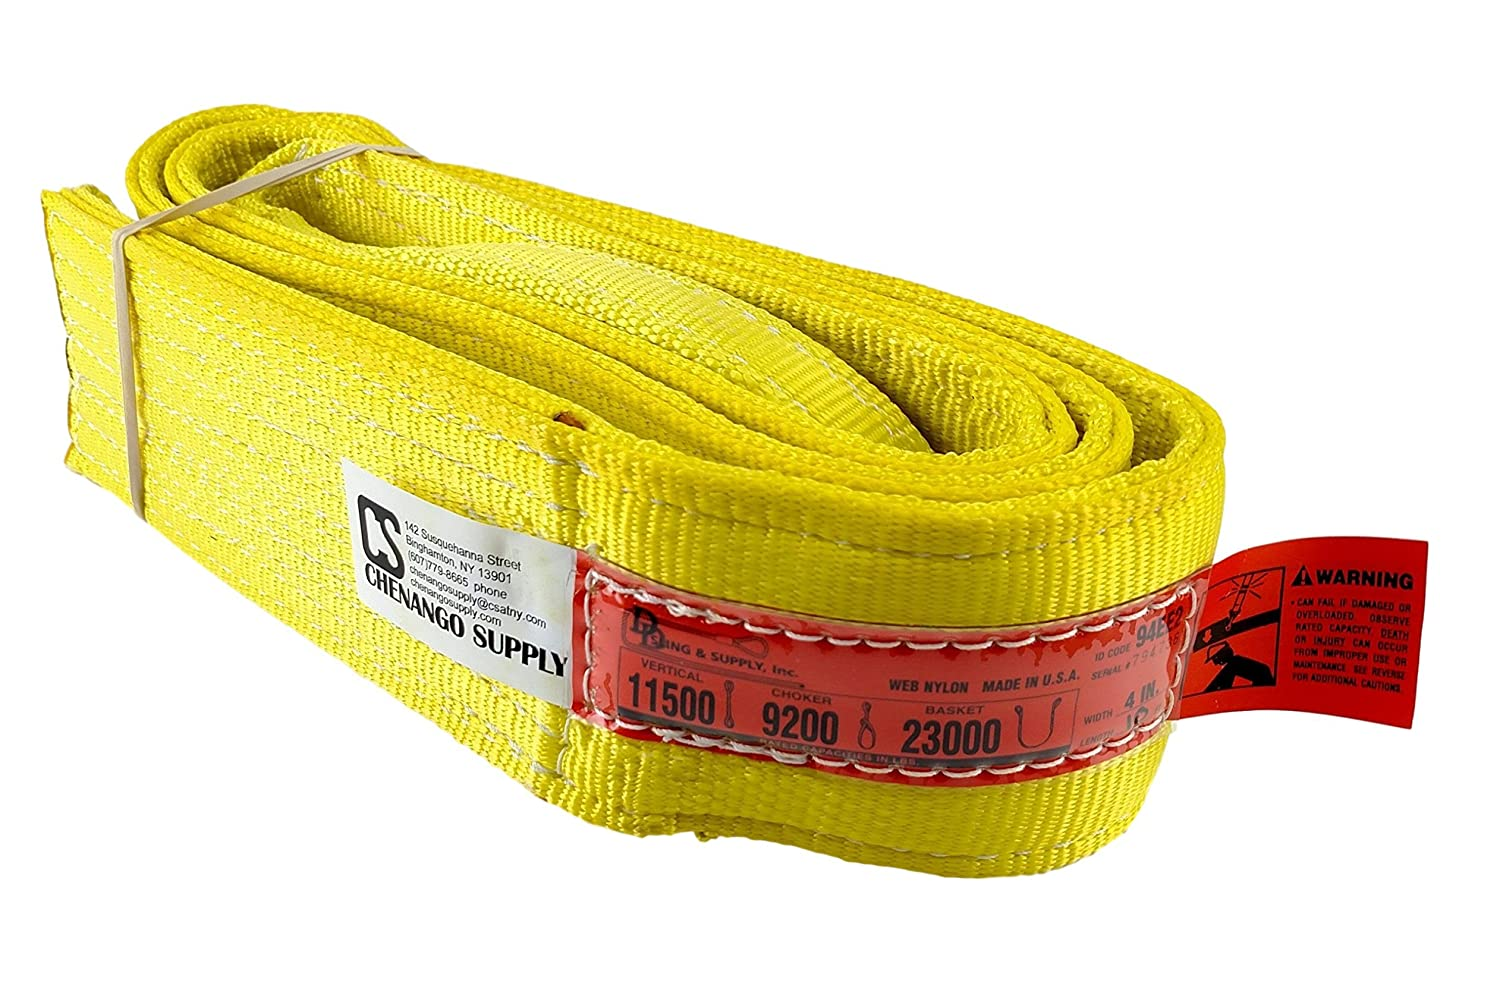 DD Sling (USA Made). 2' wide X (4' to 20' lengths) in Listing! 2 Ply Twisted Eye, Nylon Lifting Slings, Eye & Eye, Heavy Duty (900 webbing), 6,400 lbs Vertical, 5,100 Choker, 12,800 Basket Load Capacity (2inX20ft) Chenango Supply Co. Inc.